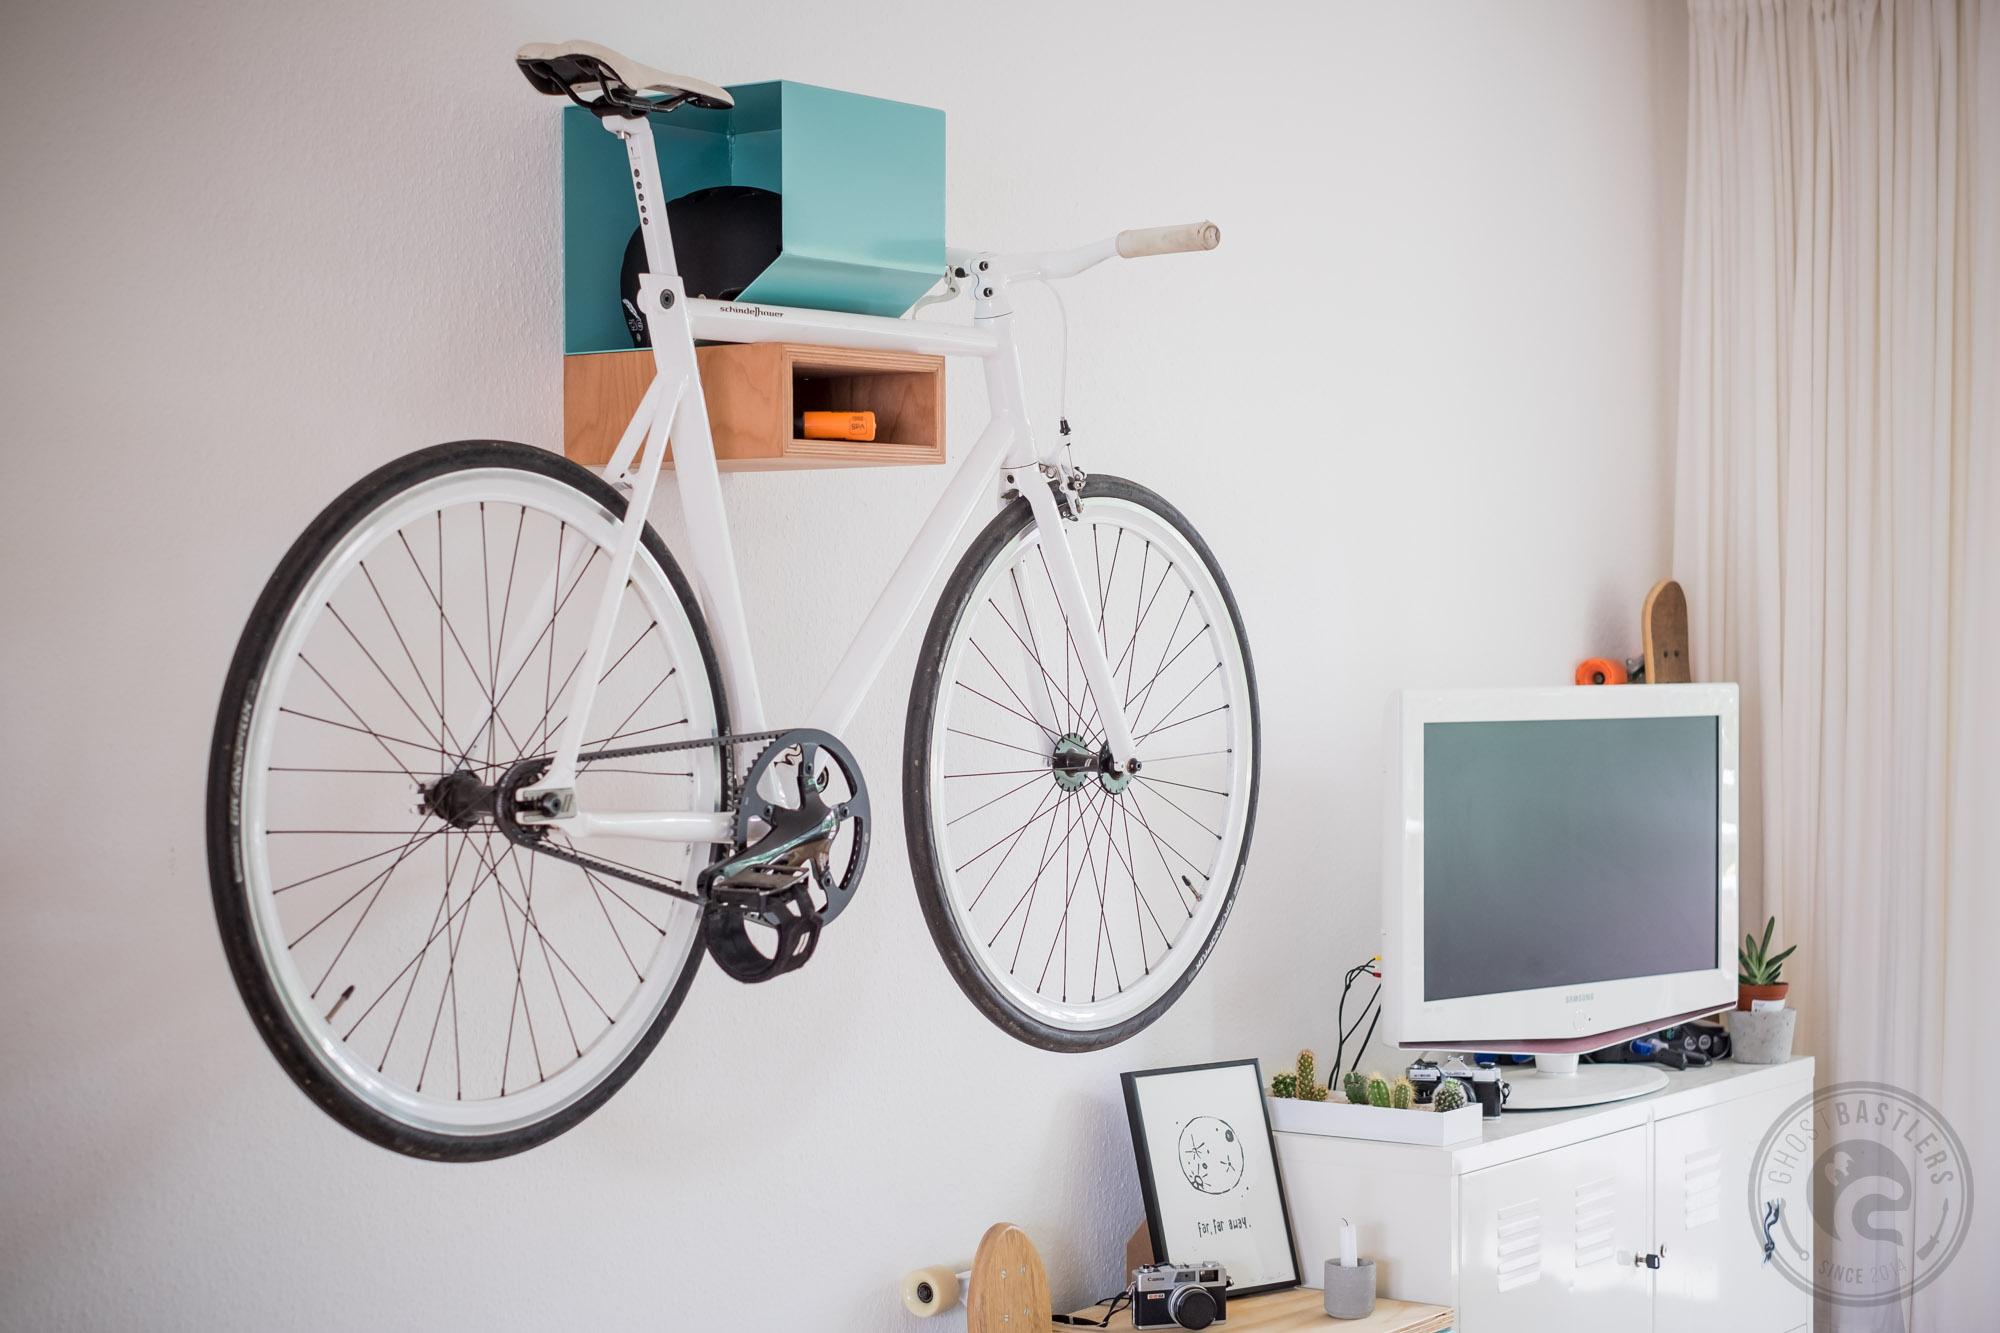 ghostbastlers fahrrad wandhalter. Black Bedroom Furniture Sets. Home Design Ideas